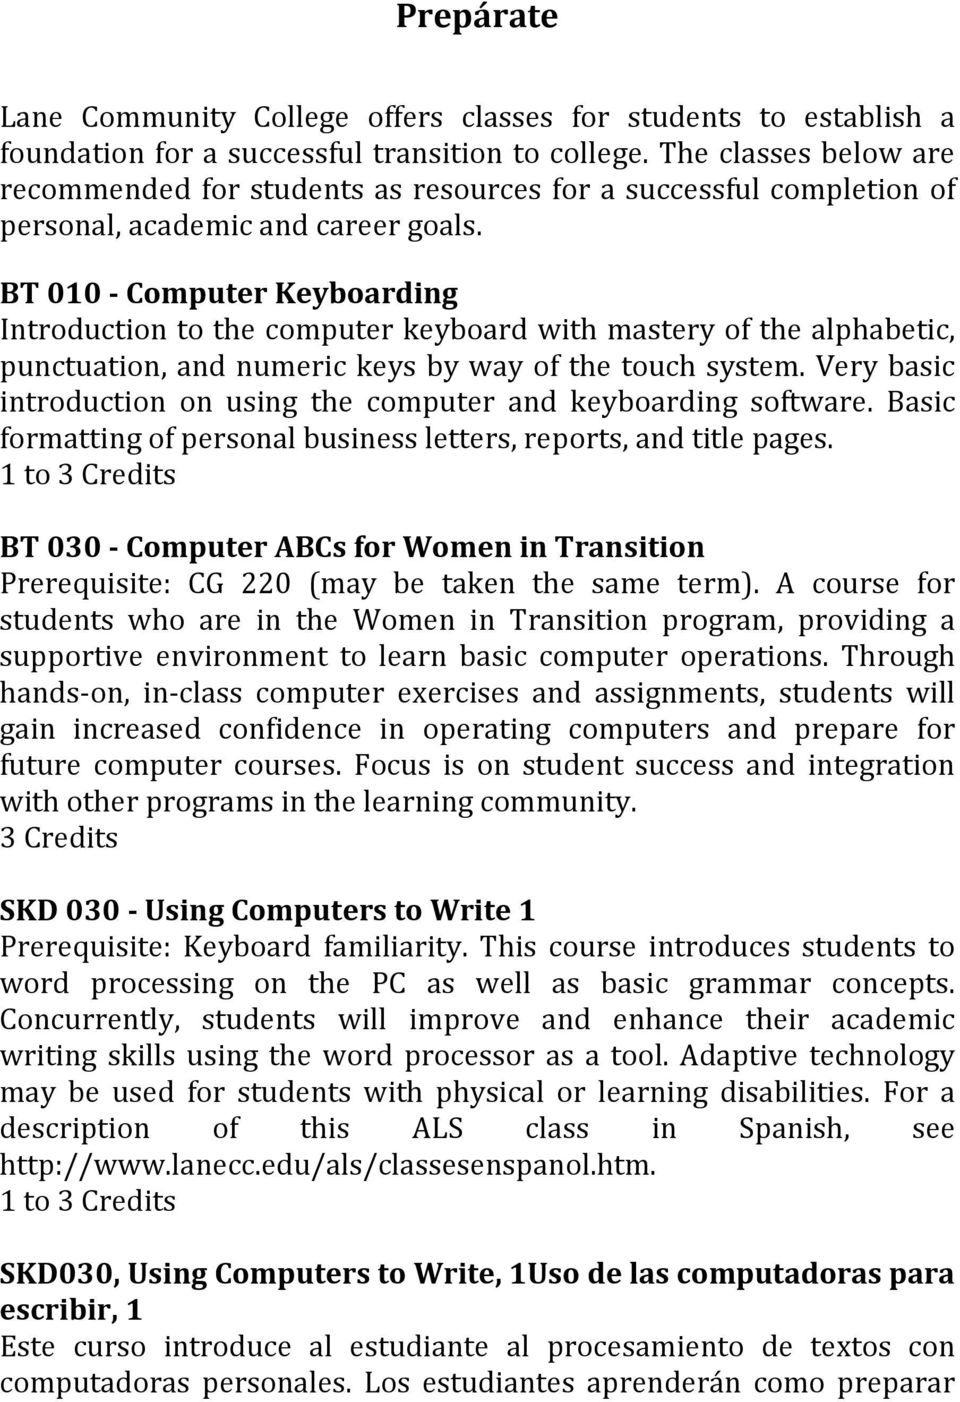 BT 010 - Computer Keyboarding Introduction to the computer keyboard with mastery of the alphabetic, punctuation, and numeric keys by way of the touch system.